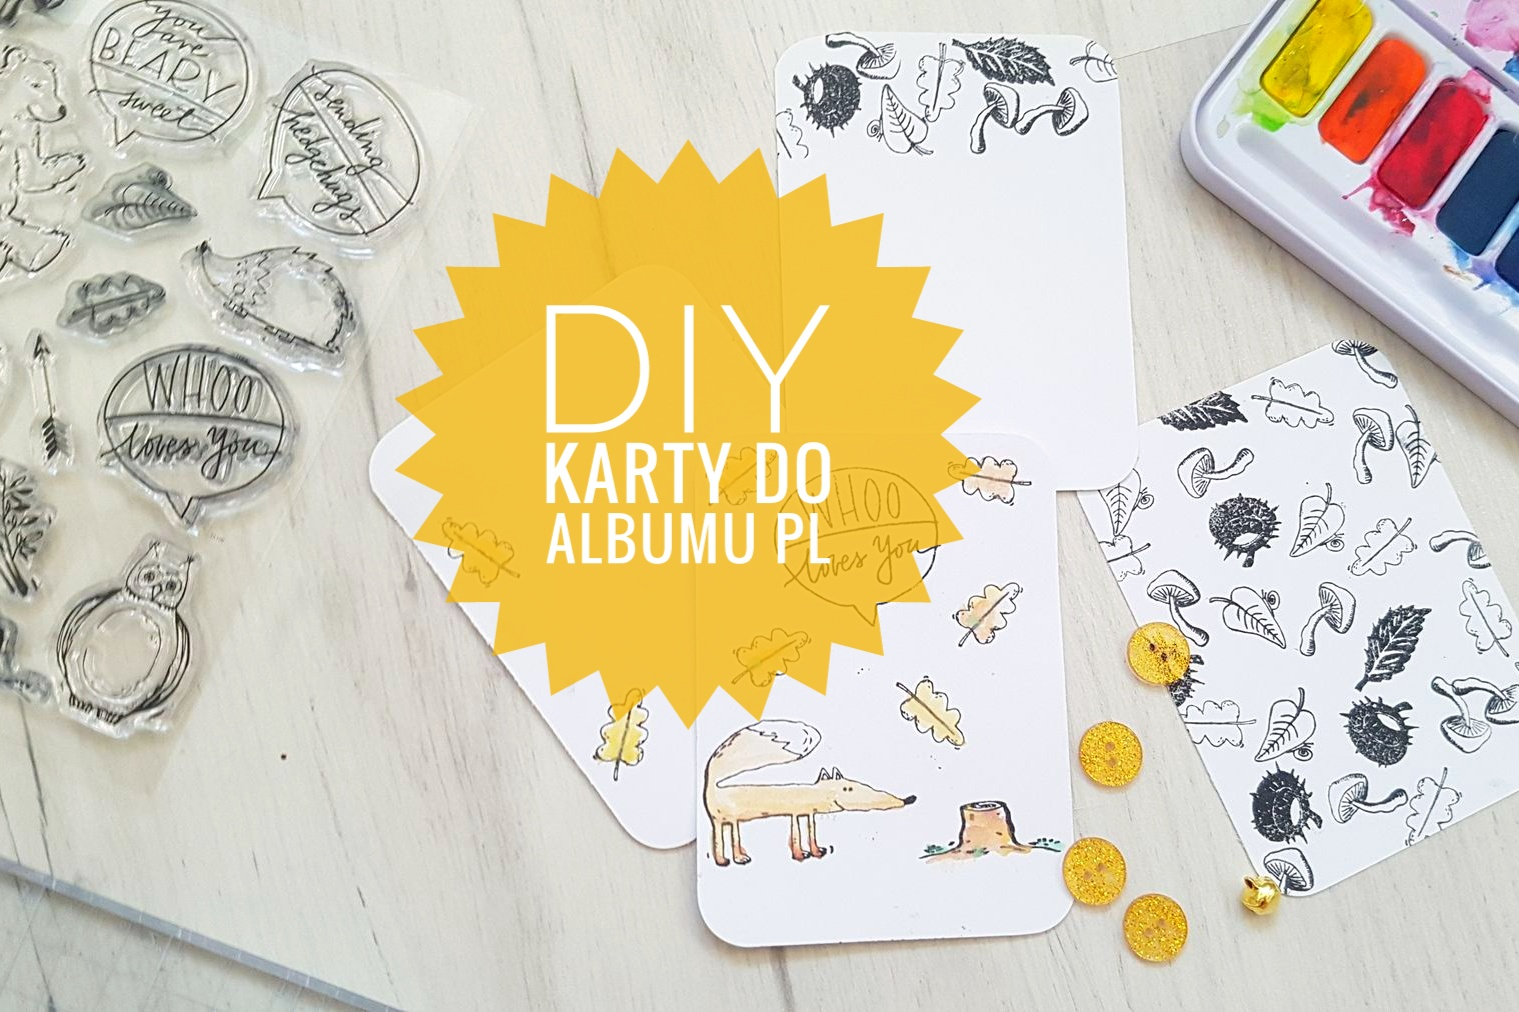 DIY karty do Project Life